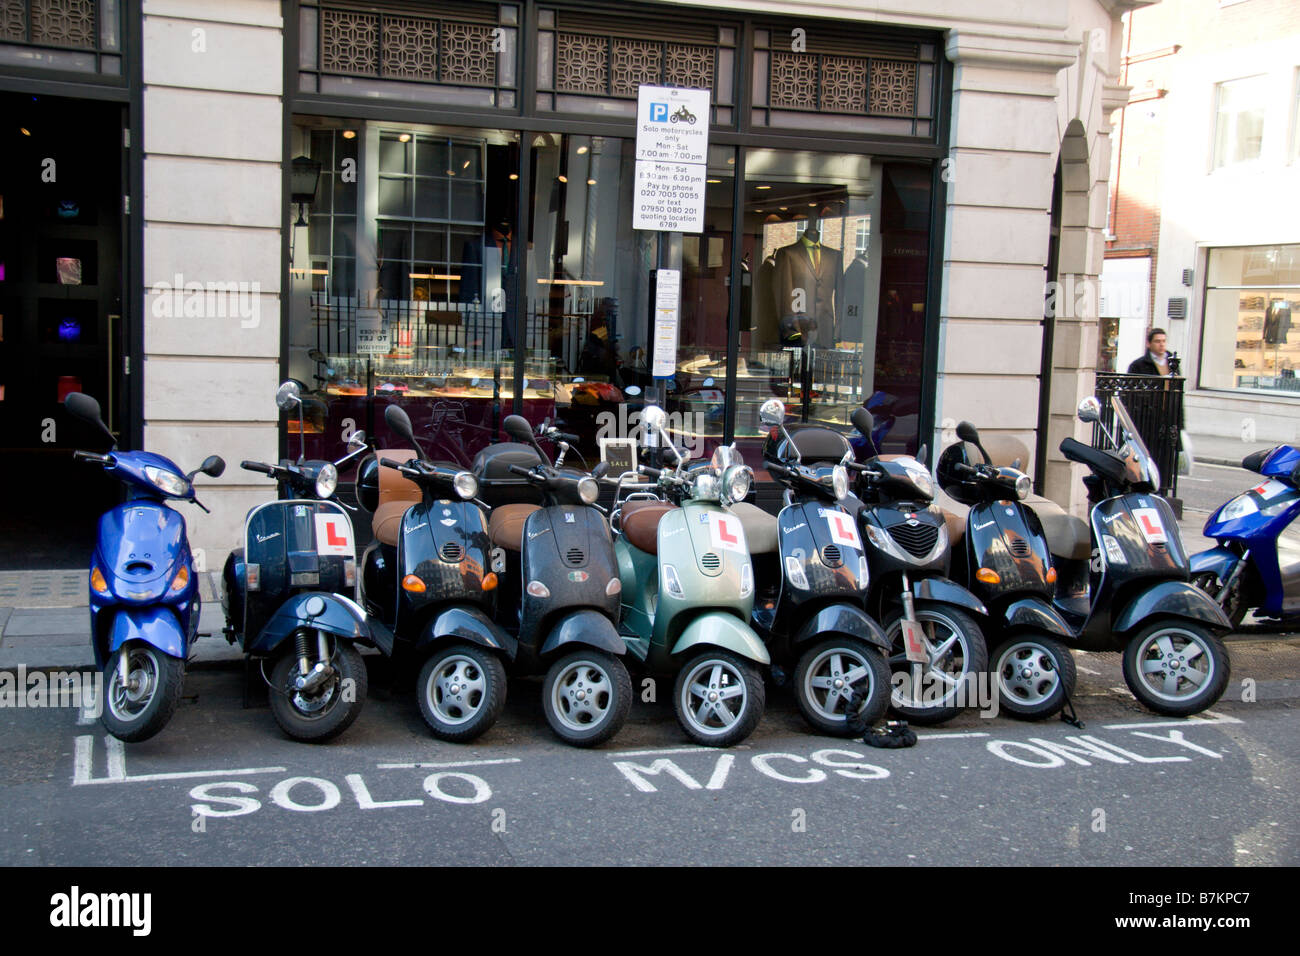 A row of motorcycle (mopeds) parked in a special parking zone on Saville Row, London. Jan 2009 - Stock Image